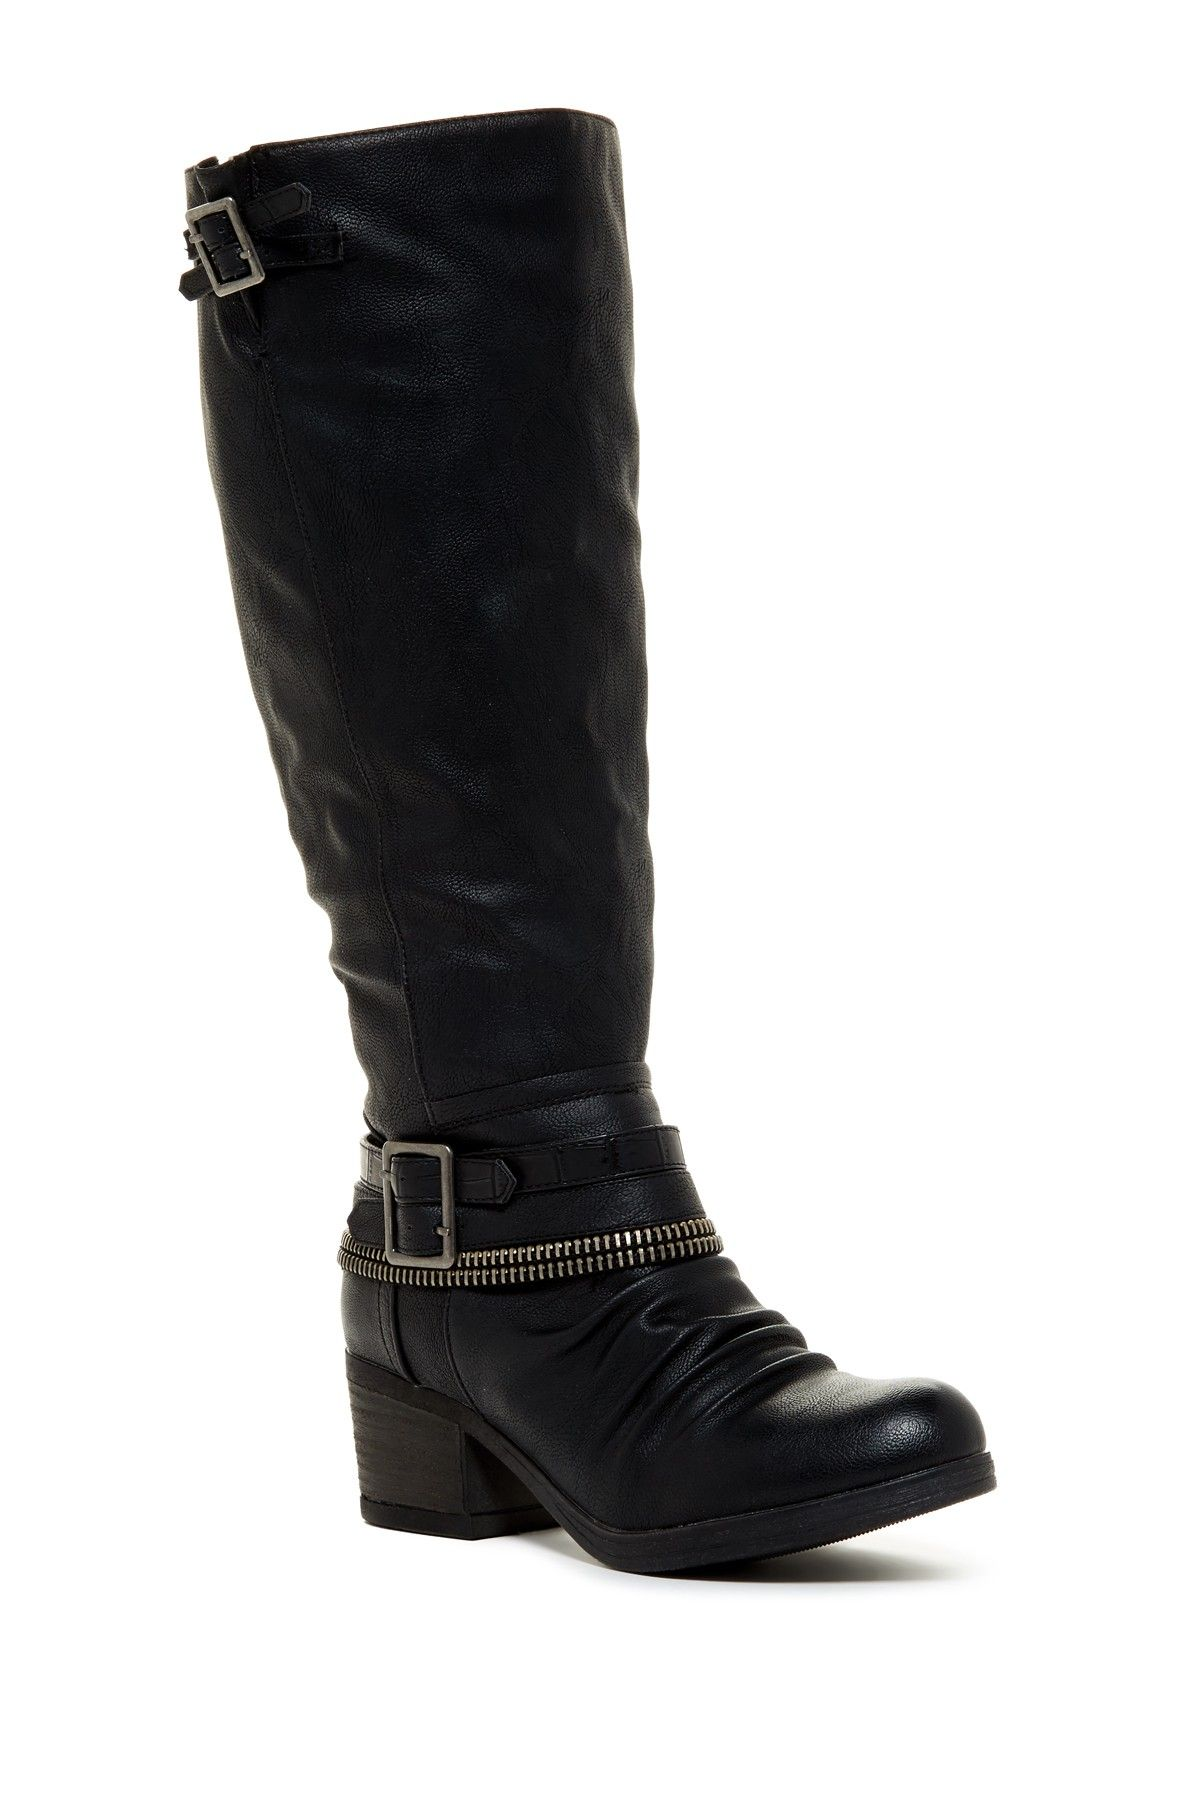 Carlos By Carlos Santana | Candace Moto Boot - Wide Calf | Calves ...